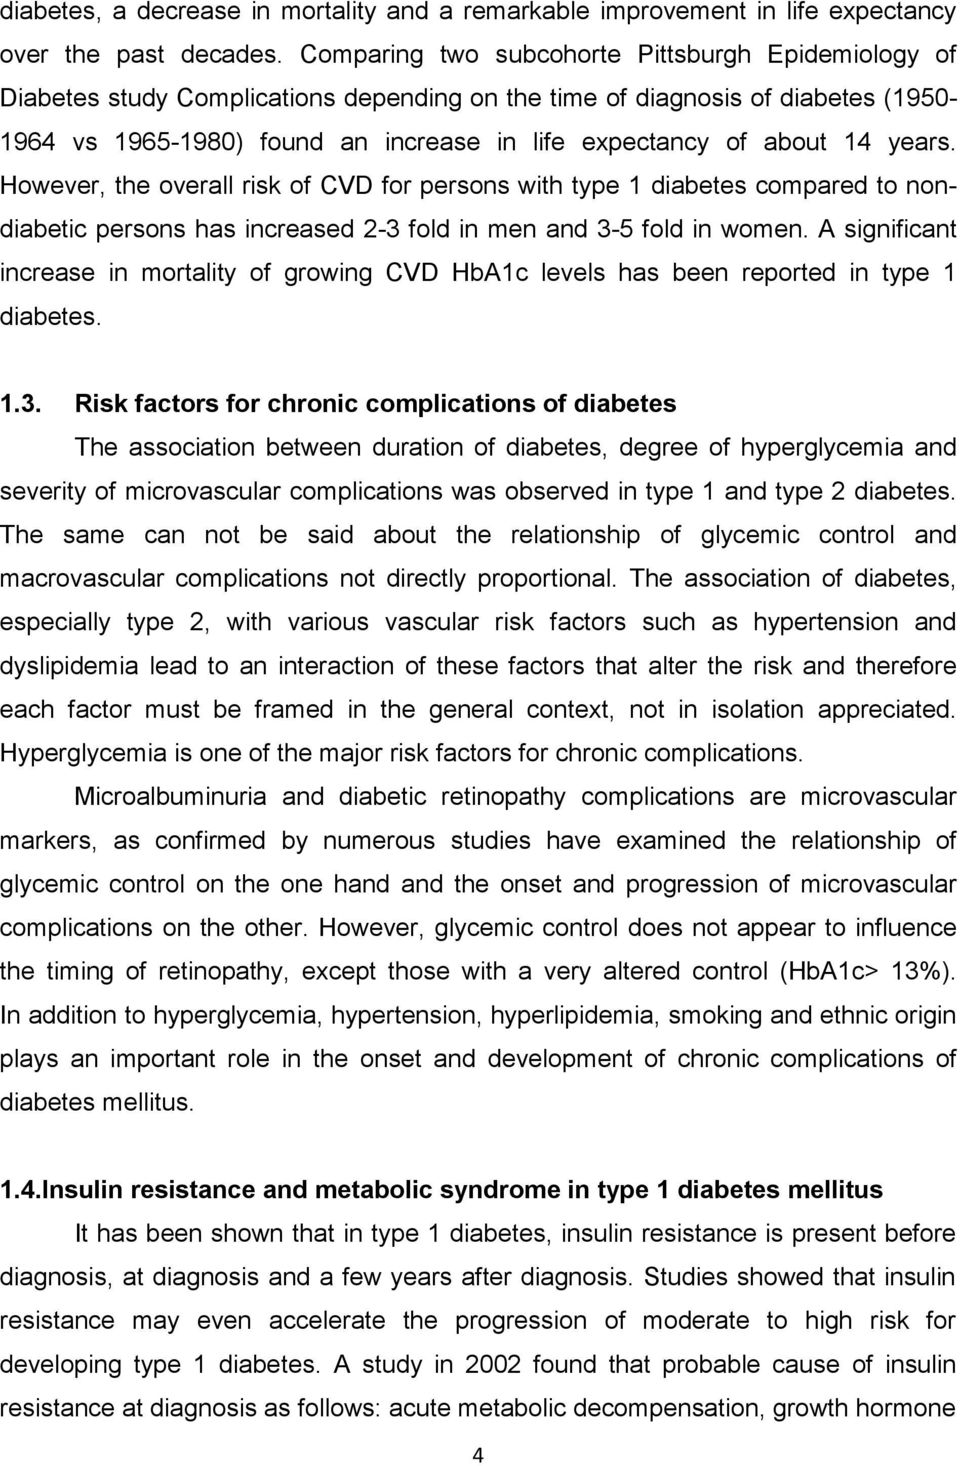 14 years. However, the overall risk of CVD for persons with type 1 diabetes compared to nondiabetic persons has increased 2-3 fold in men and 3-5 fold in women.